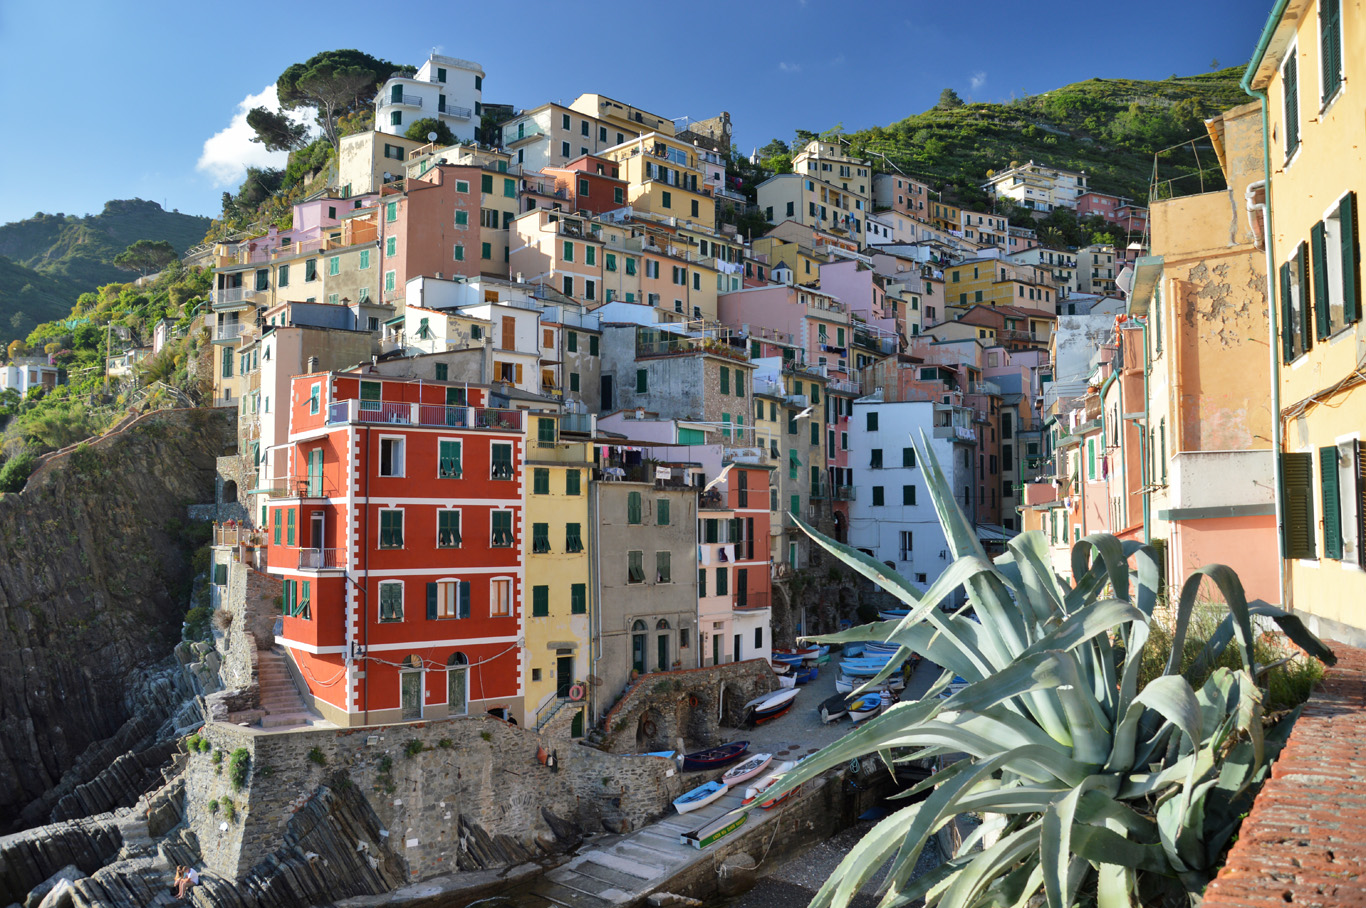 The first village of Cinque Terre - Rio Maggiore (number 2 on the map)